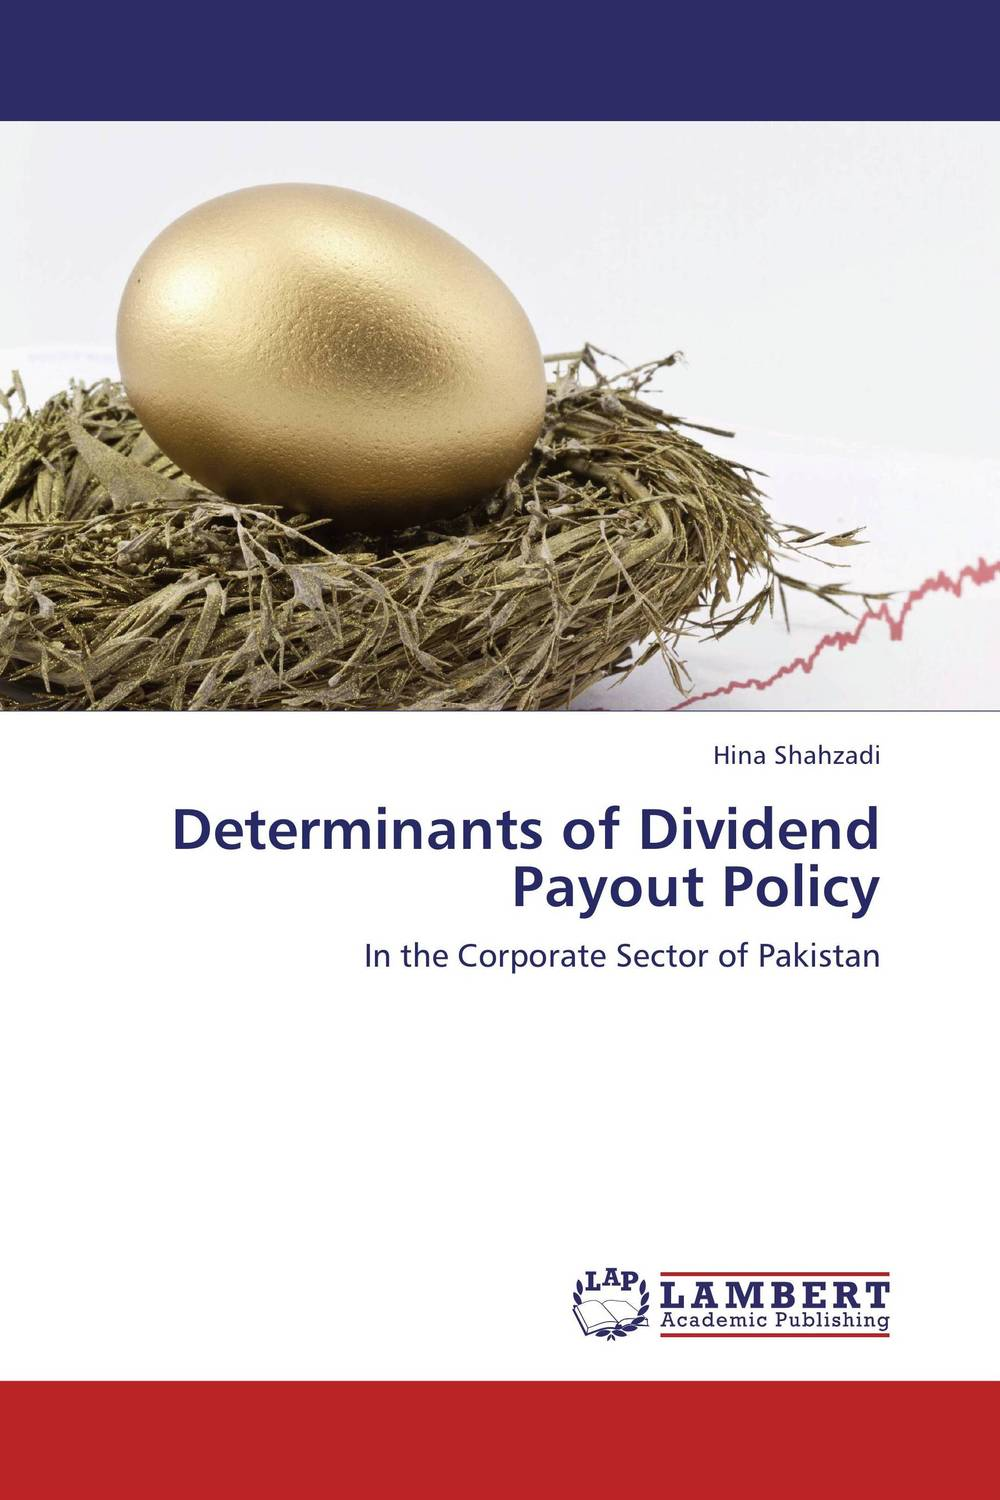 Determinants of Dividend Payout Policy dividend paying behavior in pakistan